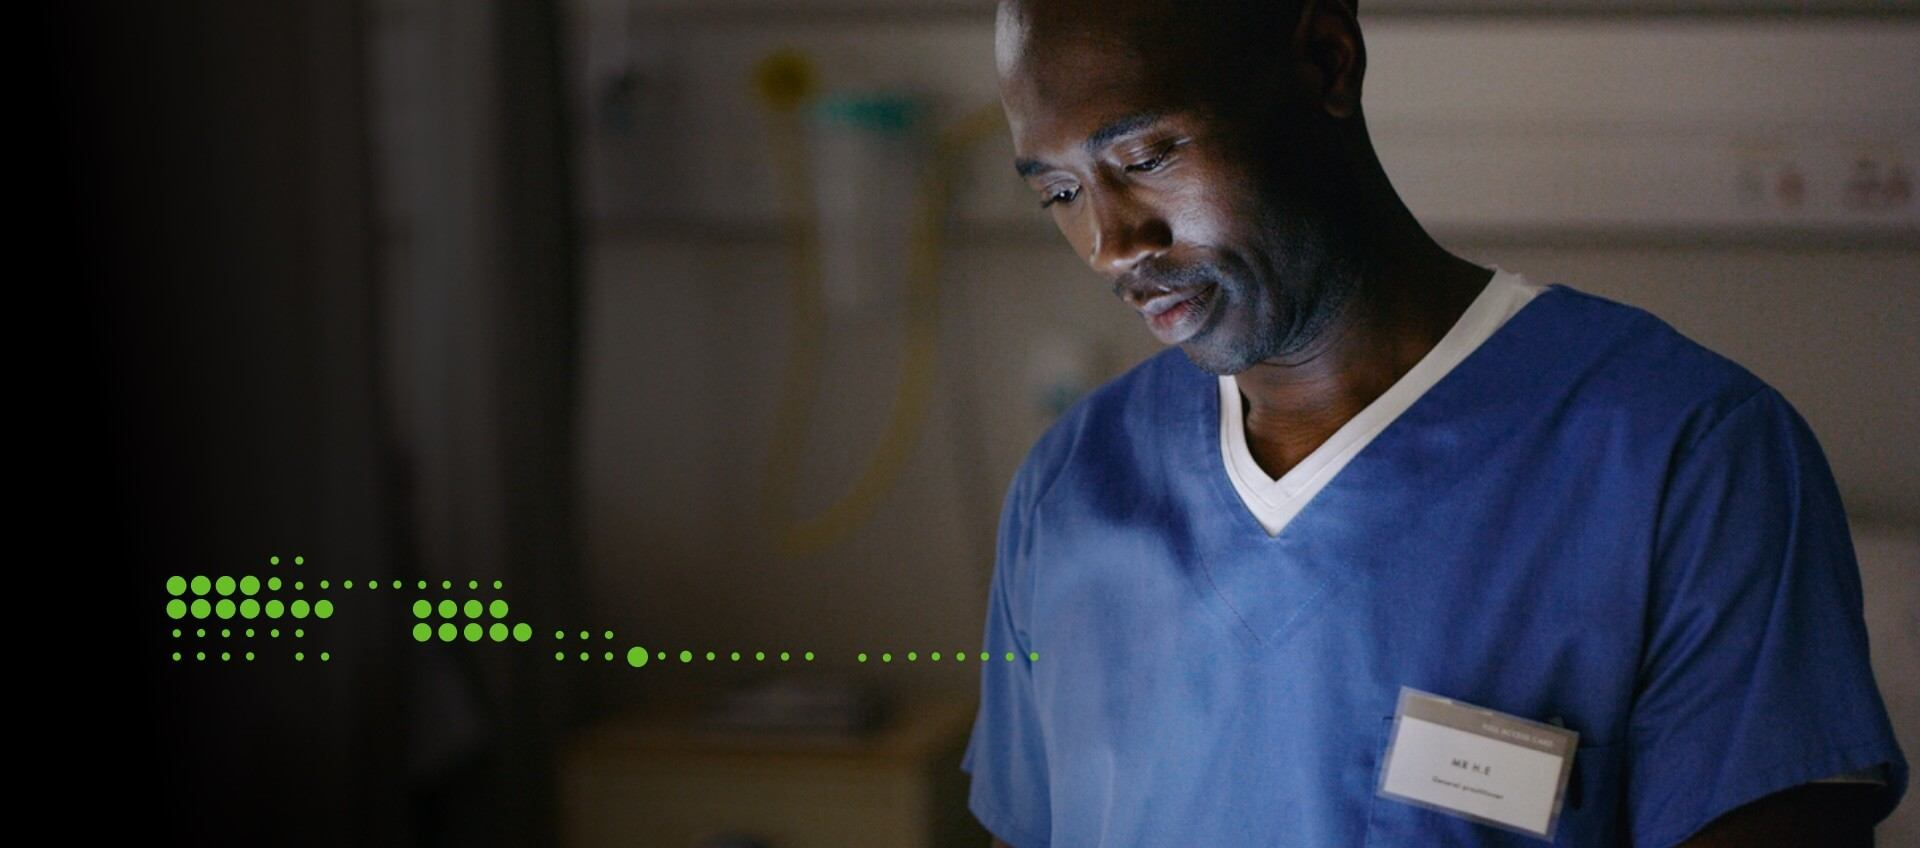 DIMENSION DATA OFFERS FREE INCIDENT RESPONSE IR FOR CYBERSECURITY ATTACKS AIMED AT HOSPITALS DURING COVID19